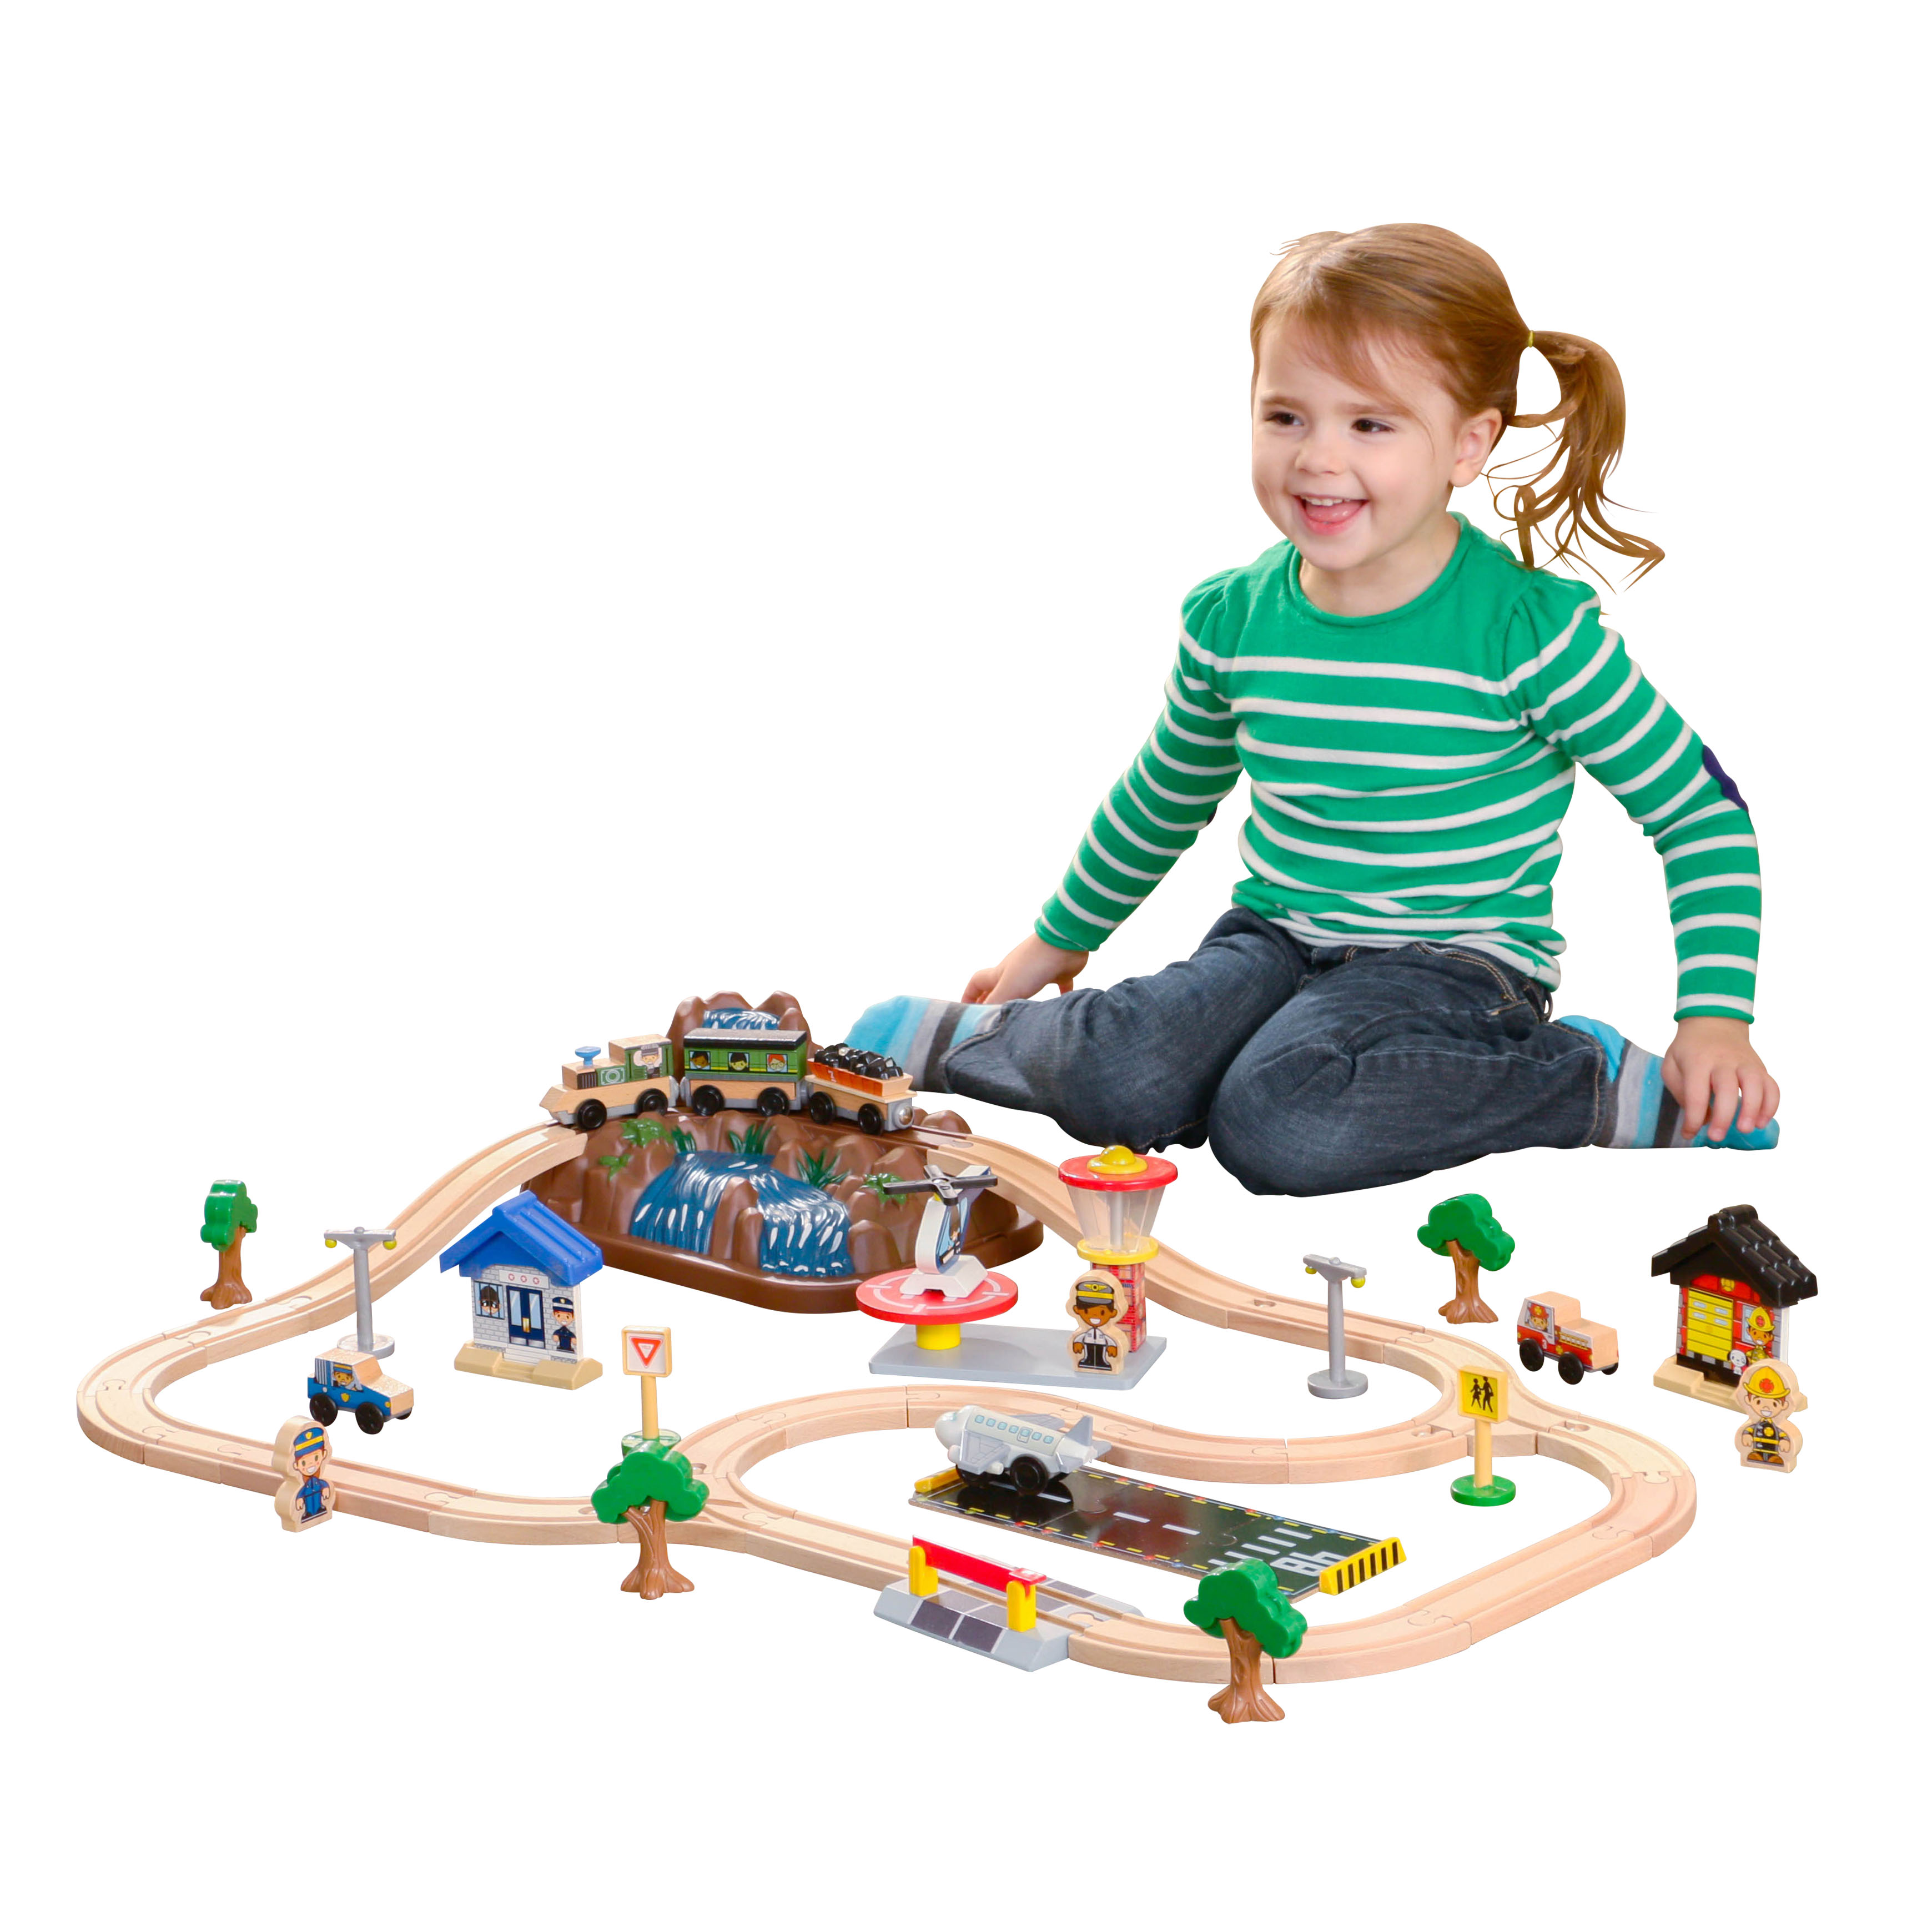 KidKraft Bucket Top Mountain Train Set with 61 accessories included